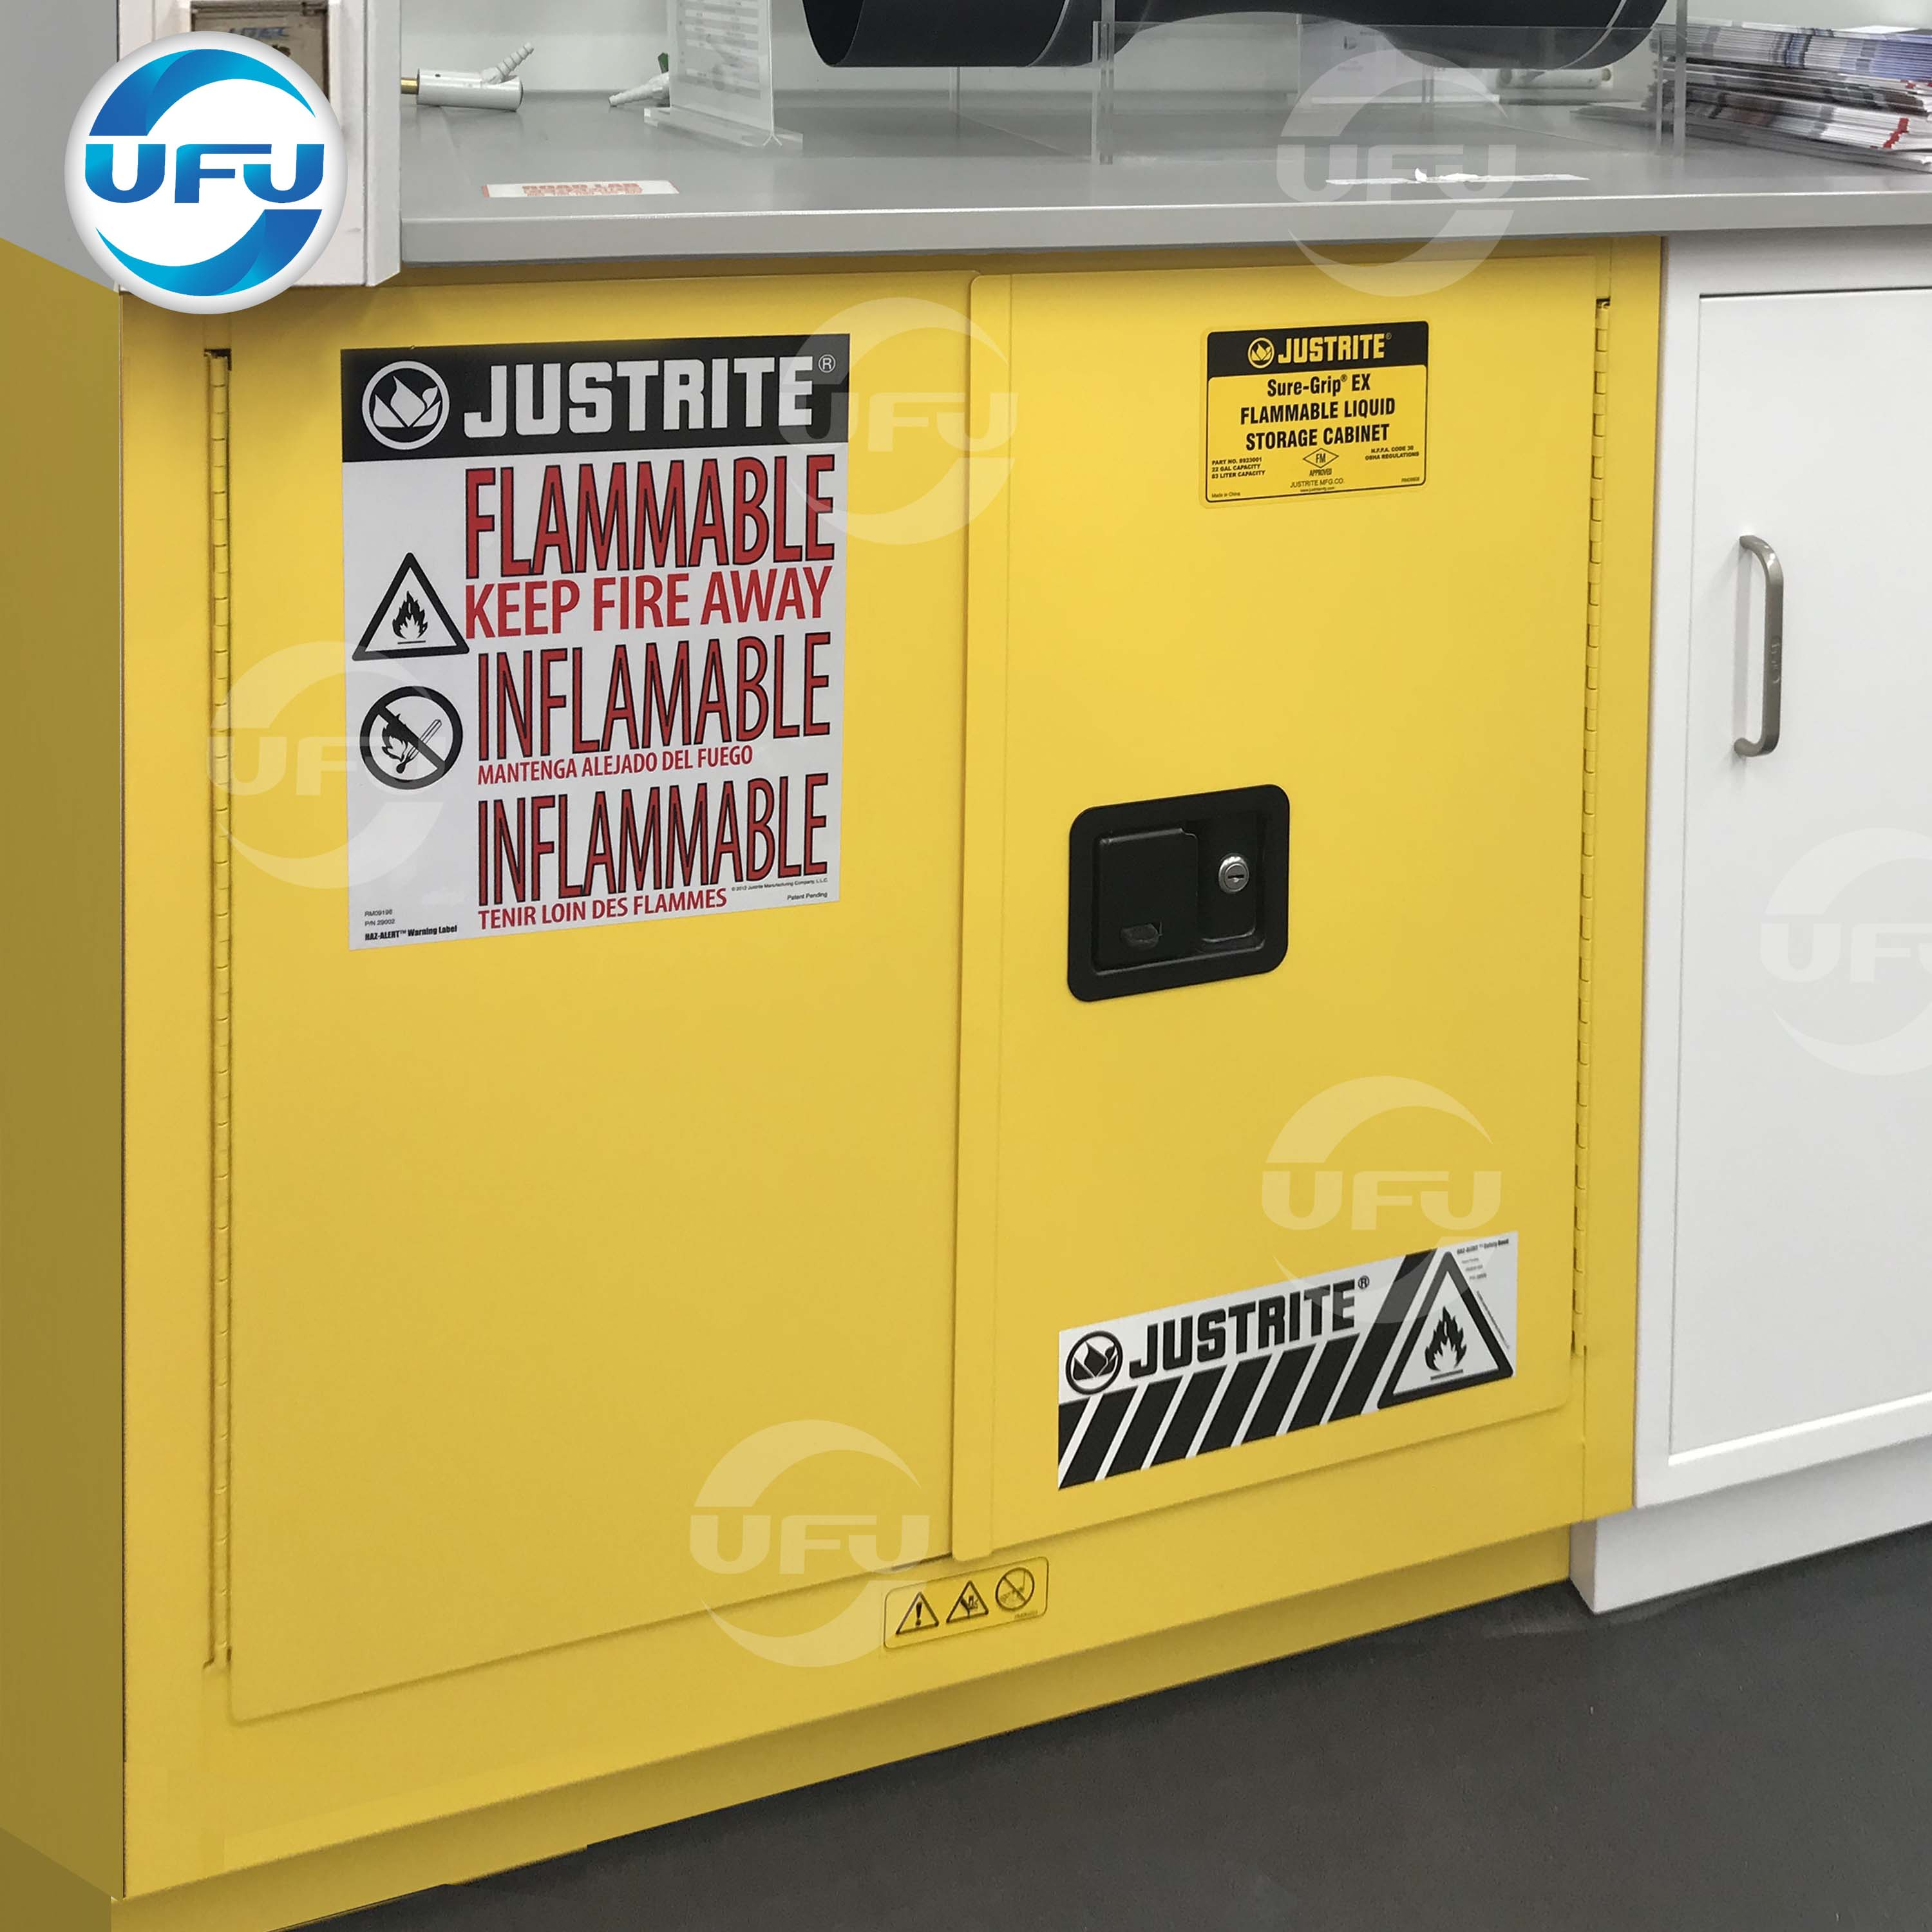 Laboratory Anti Explosion Cabinet Flammable Safety Cabinet View 30 45 60 90 Gal Flammable Cabinets Safety Cabinets Justrite Product Details From Shanghai Ufu Laboratory Equipment Co Ltd On Alibaba Com